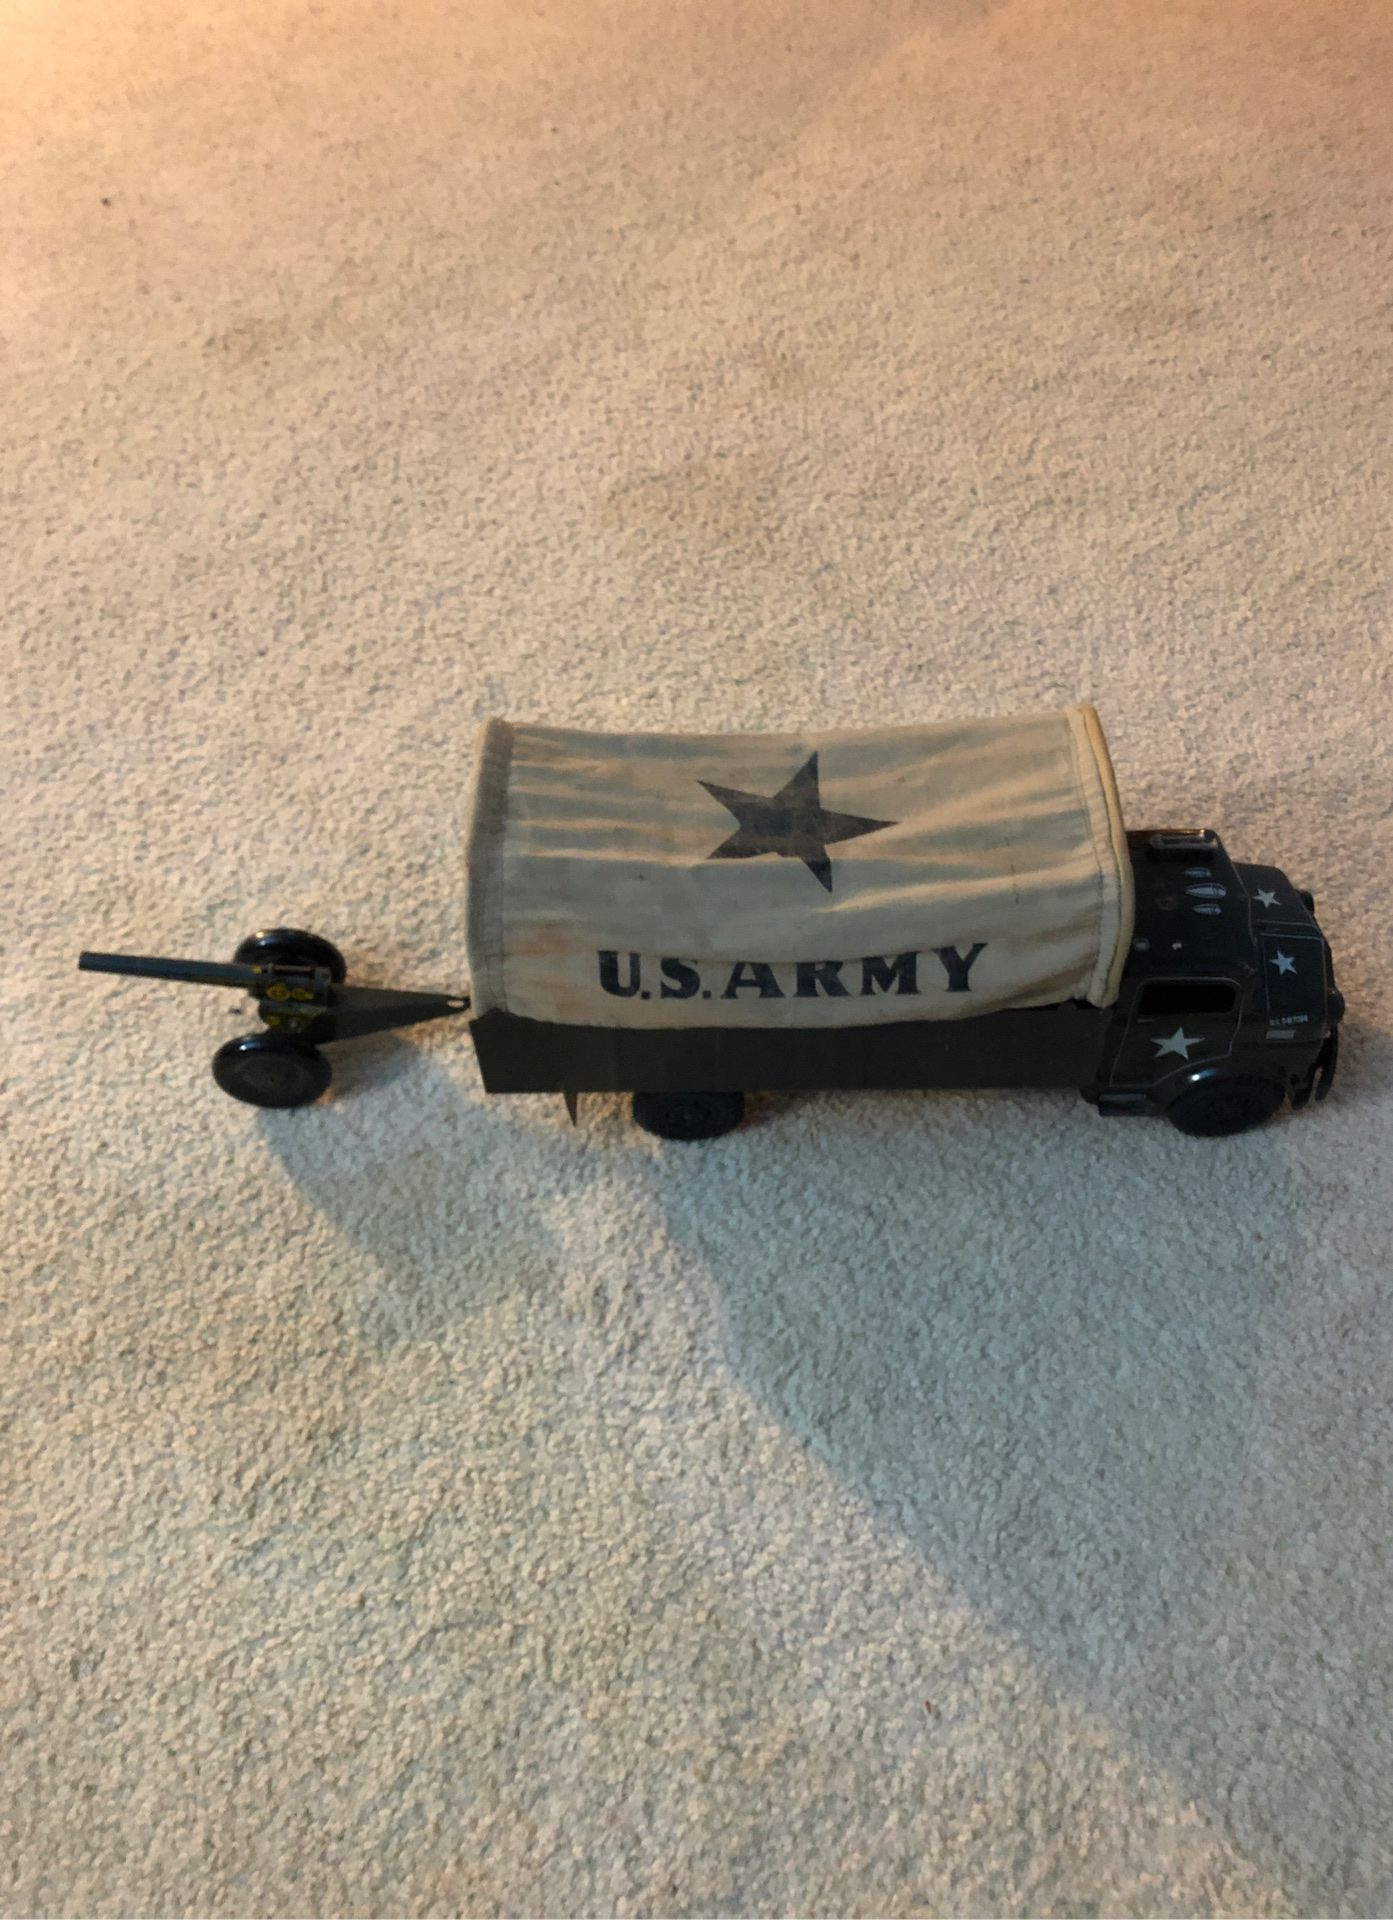 U s army toy truck with cannon